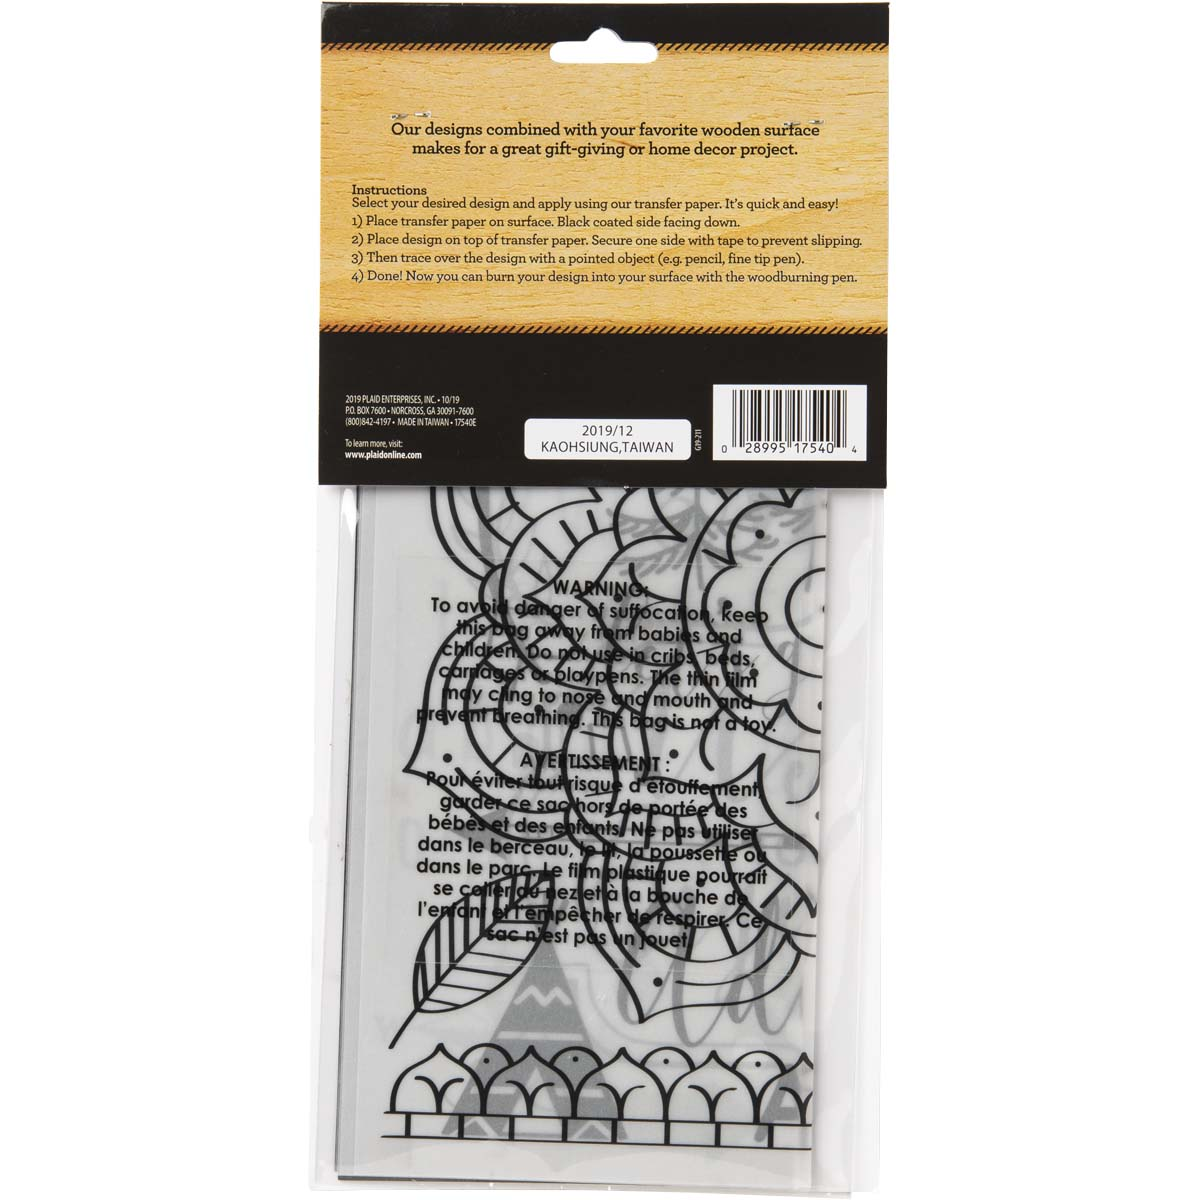 Plaid ® Wood Burning Pattern Sheets, 5 pc. - 17540E